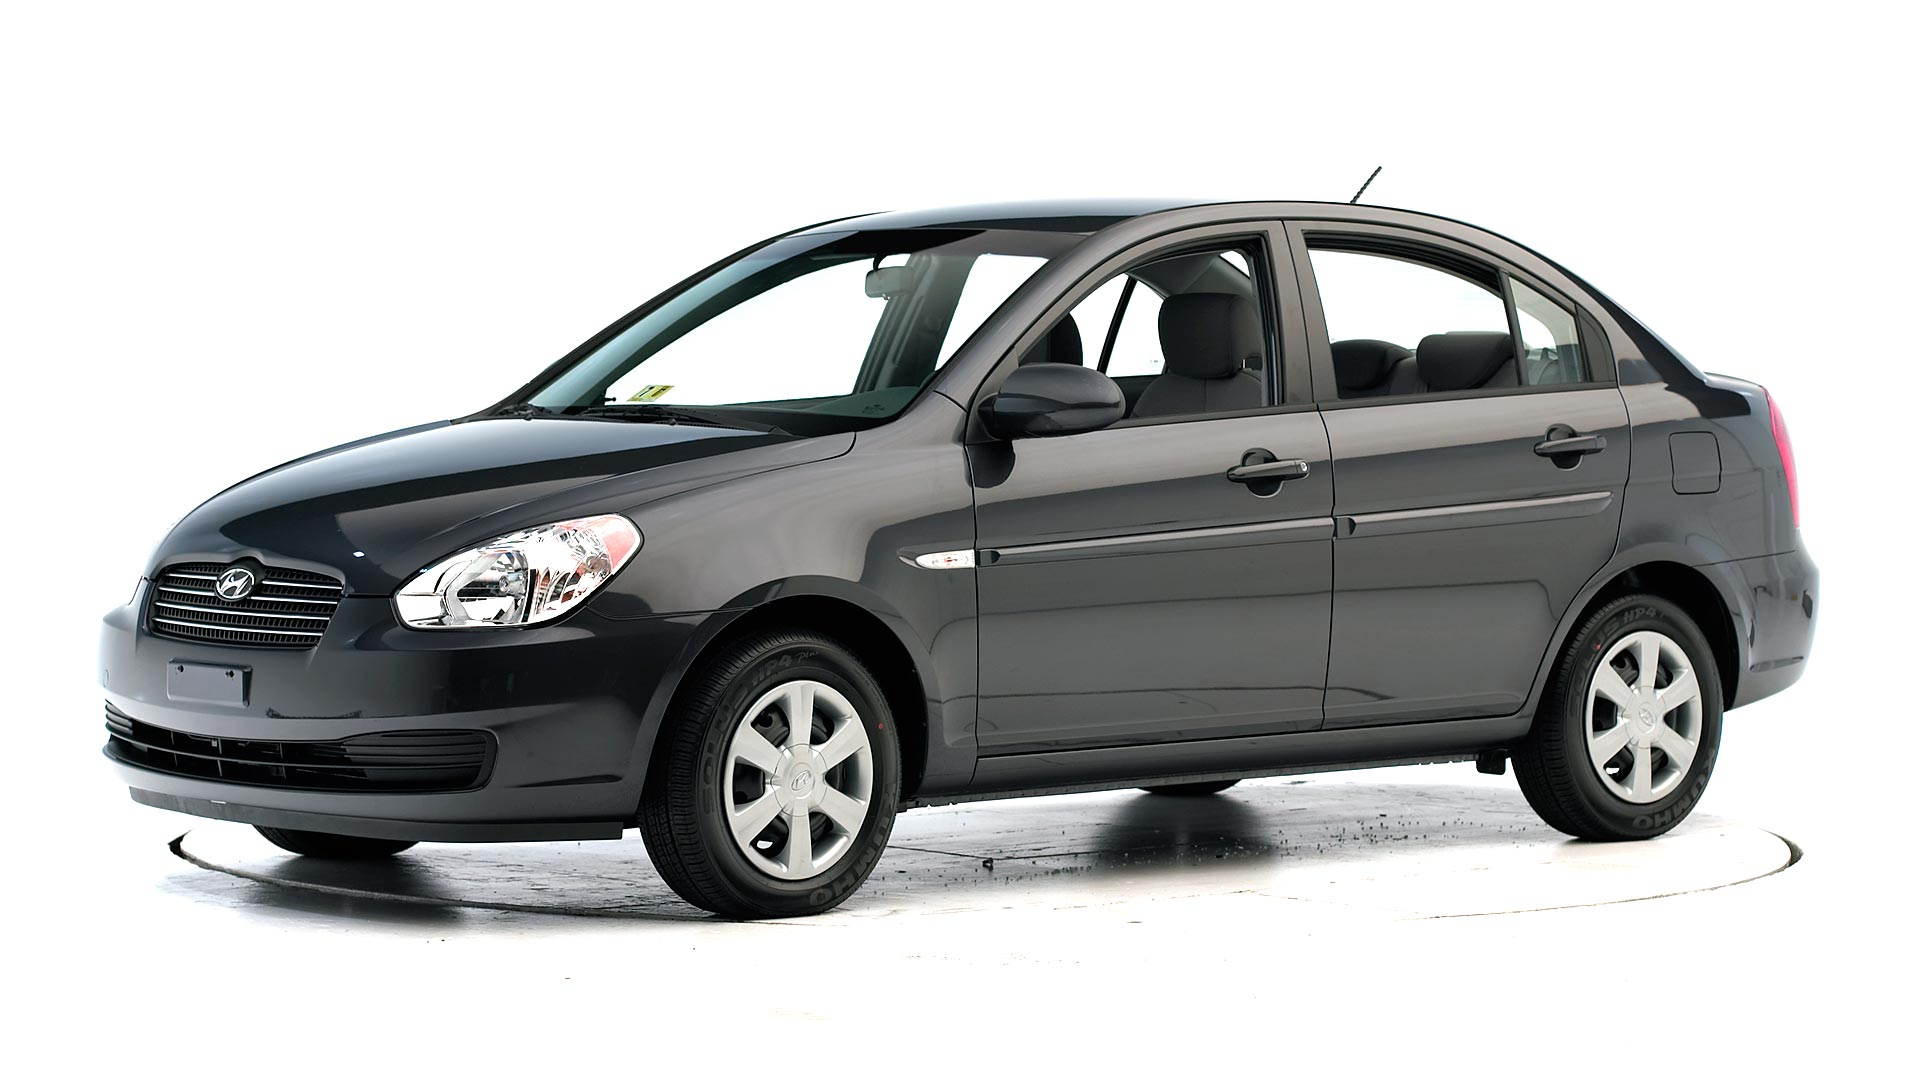 2007 Hyundai Accent 4-door sedan